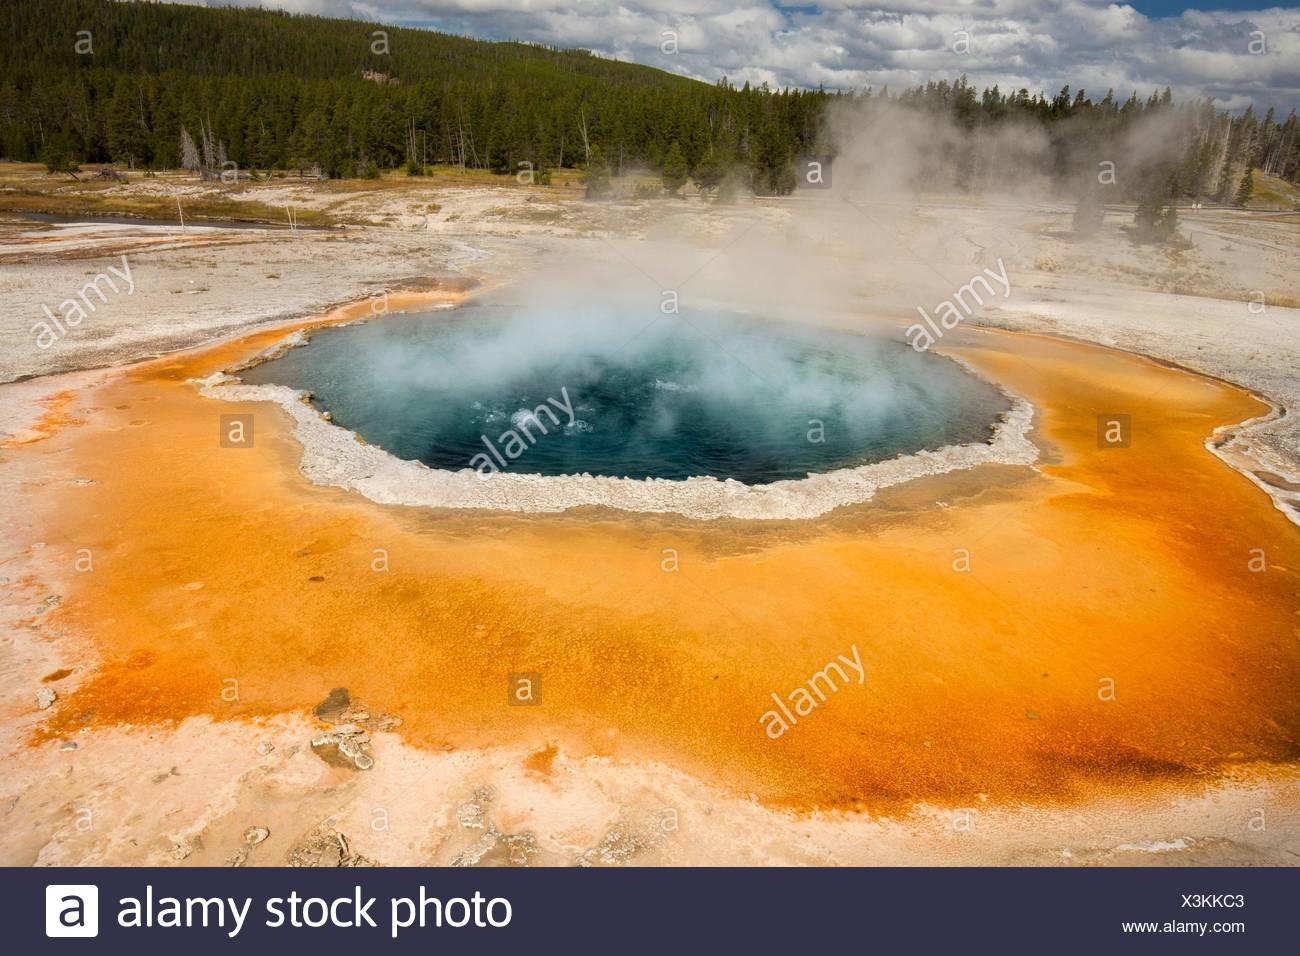 Morning Glory Pool, a hot spring in Upper Geyser Basin of Yellowstone National Park, Wyoming, with steaming water, a white limestone rim, and forest - Stock Image